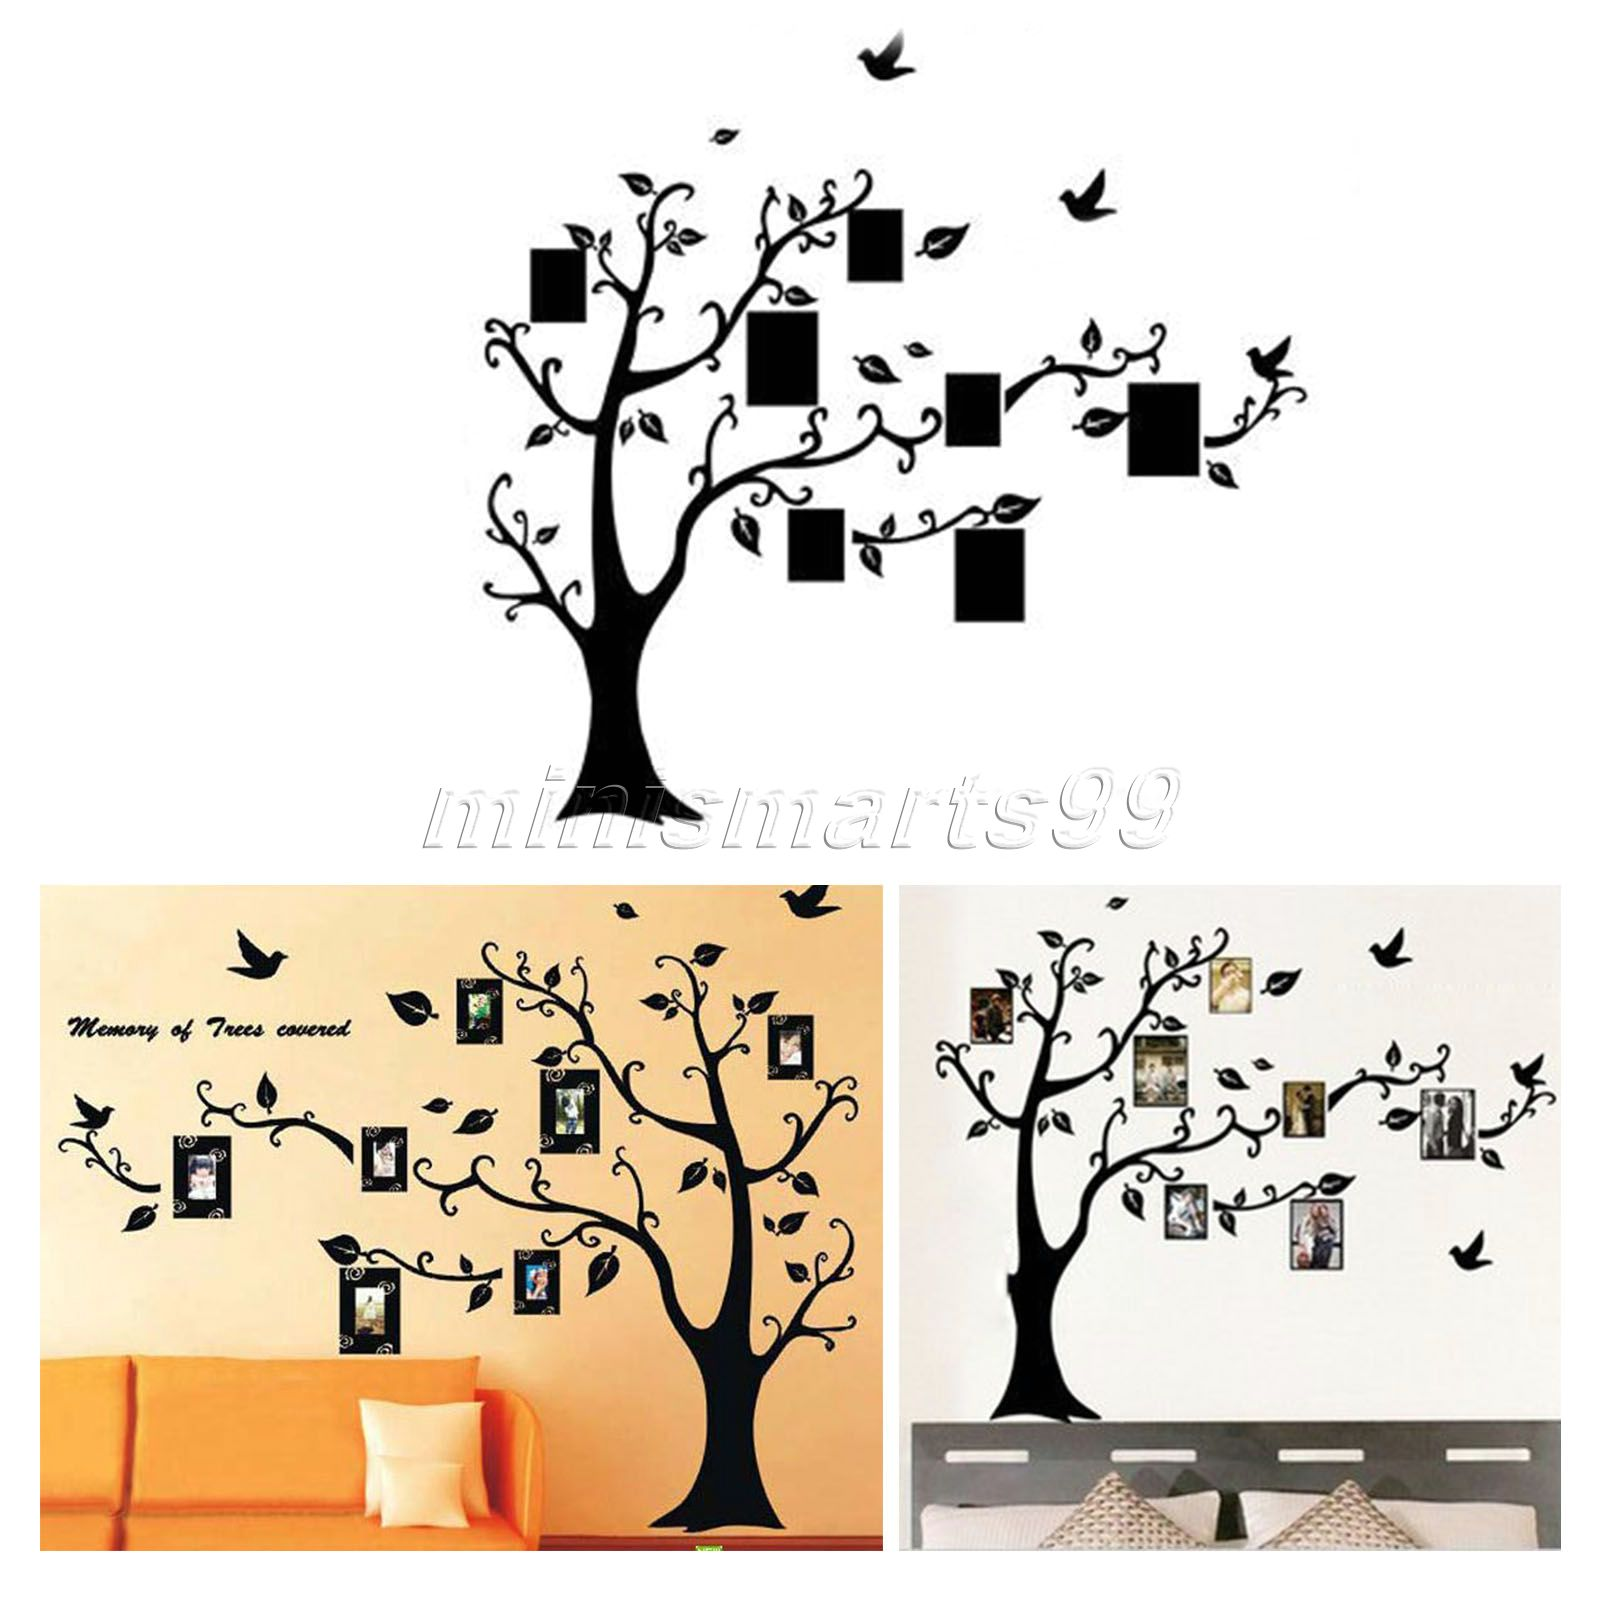 dophee 115*142cm Black 3D DIY Photo Tree PVC Wall Decals Adhesive Family Wall Stickers Mural Art Home Decor